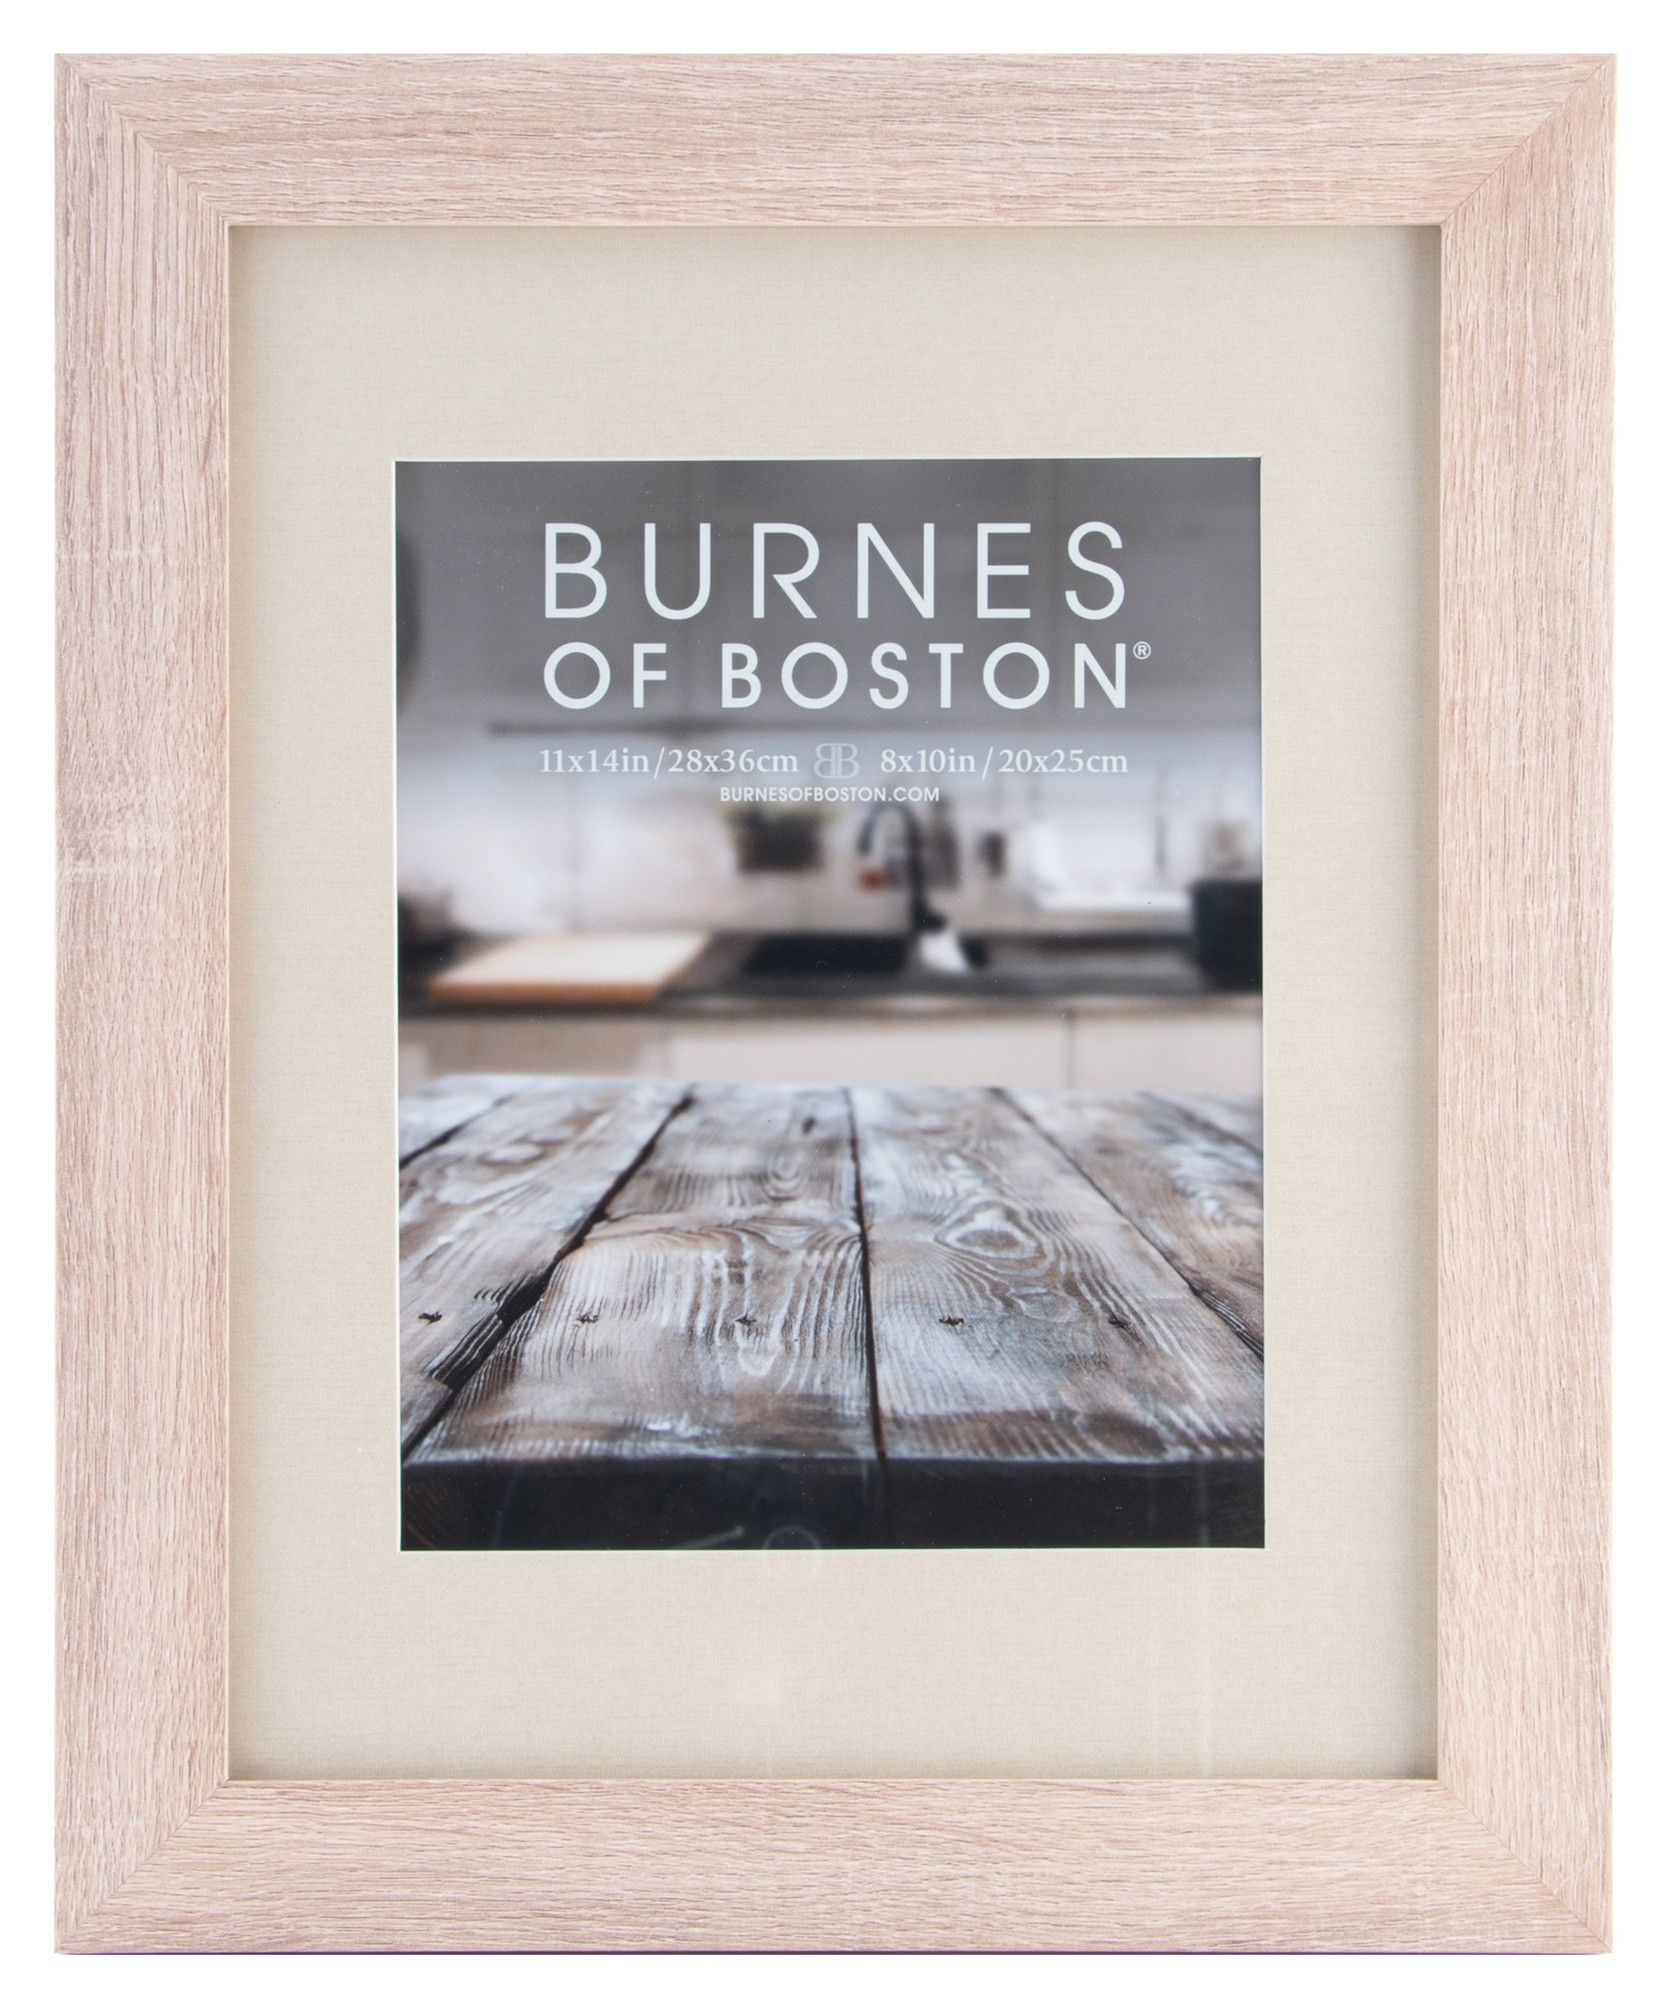 Burnes of Boston Wide Gallery Matted Picture Frame   Products ...